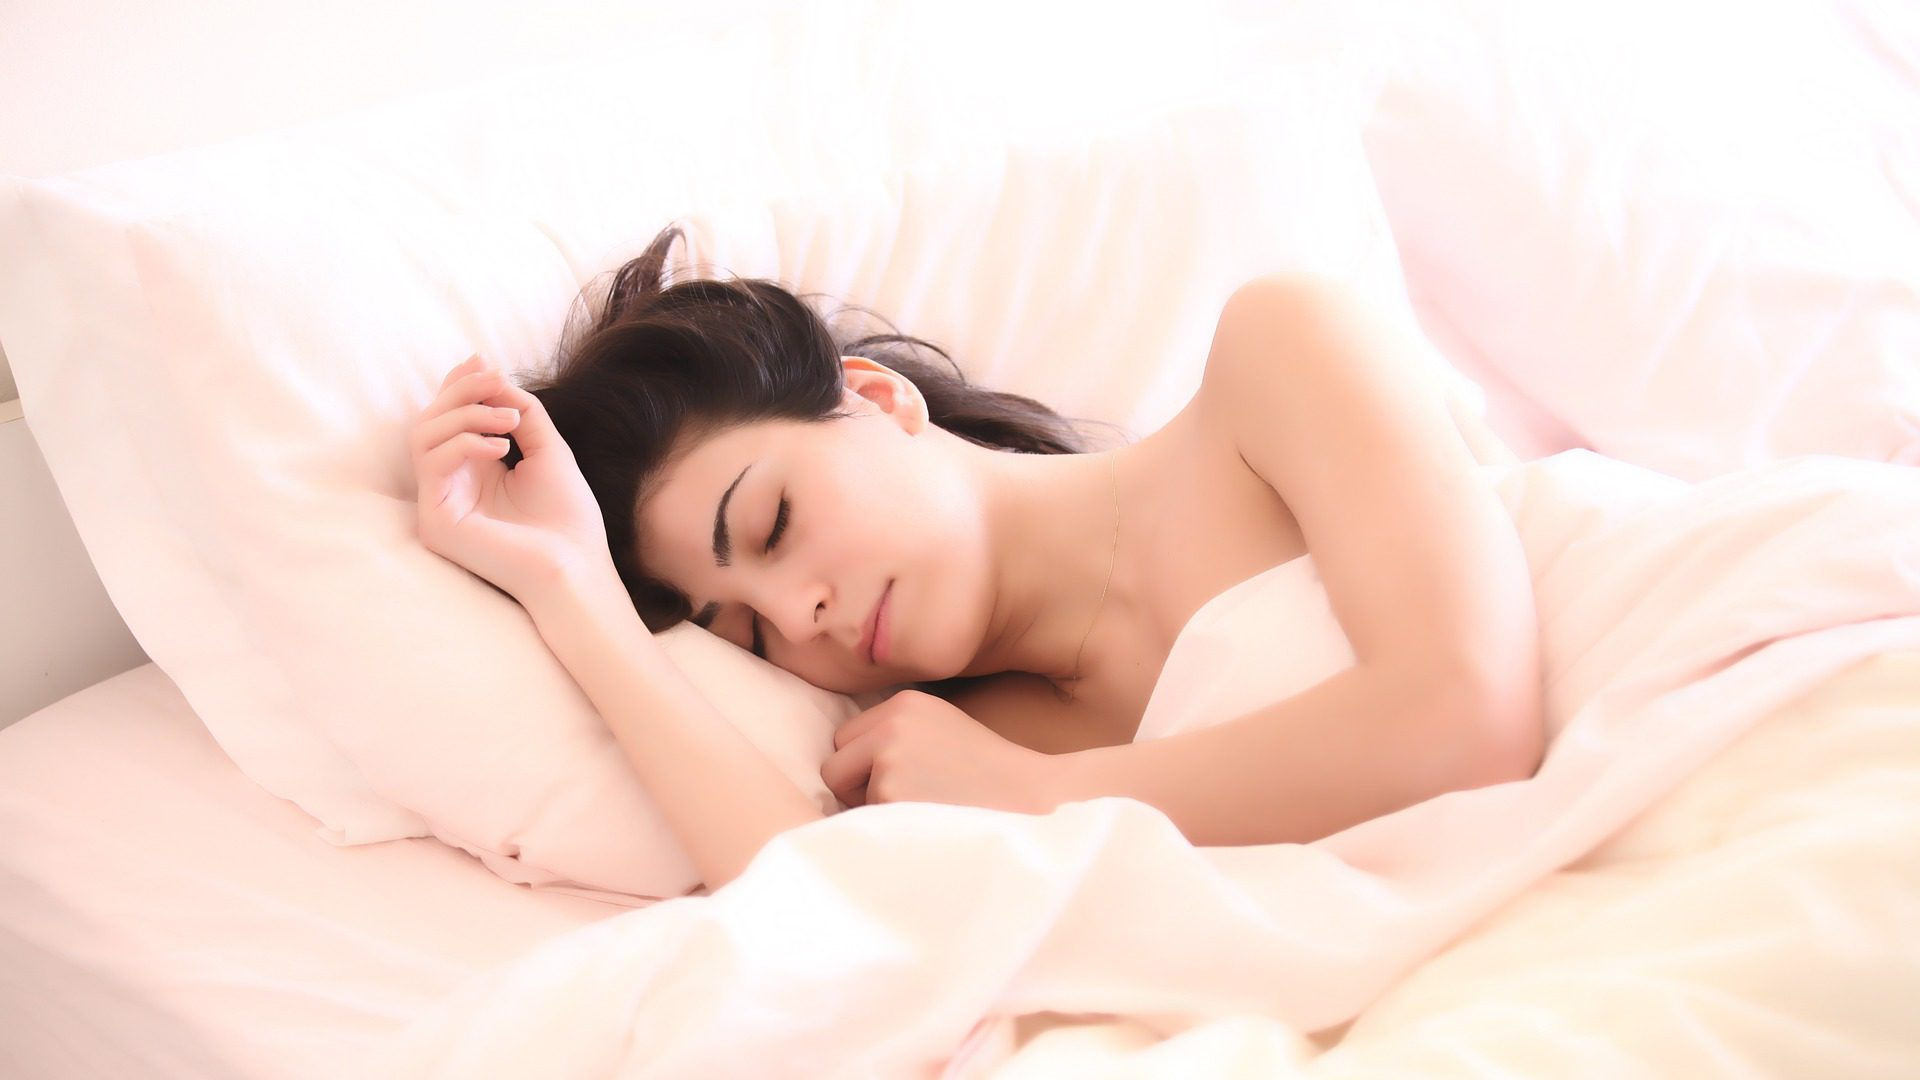 6 best Ways To Fix The Sleep Problems With The Help Of Science 8